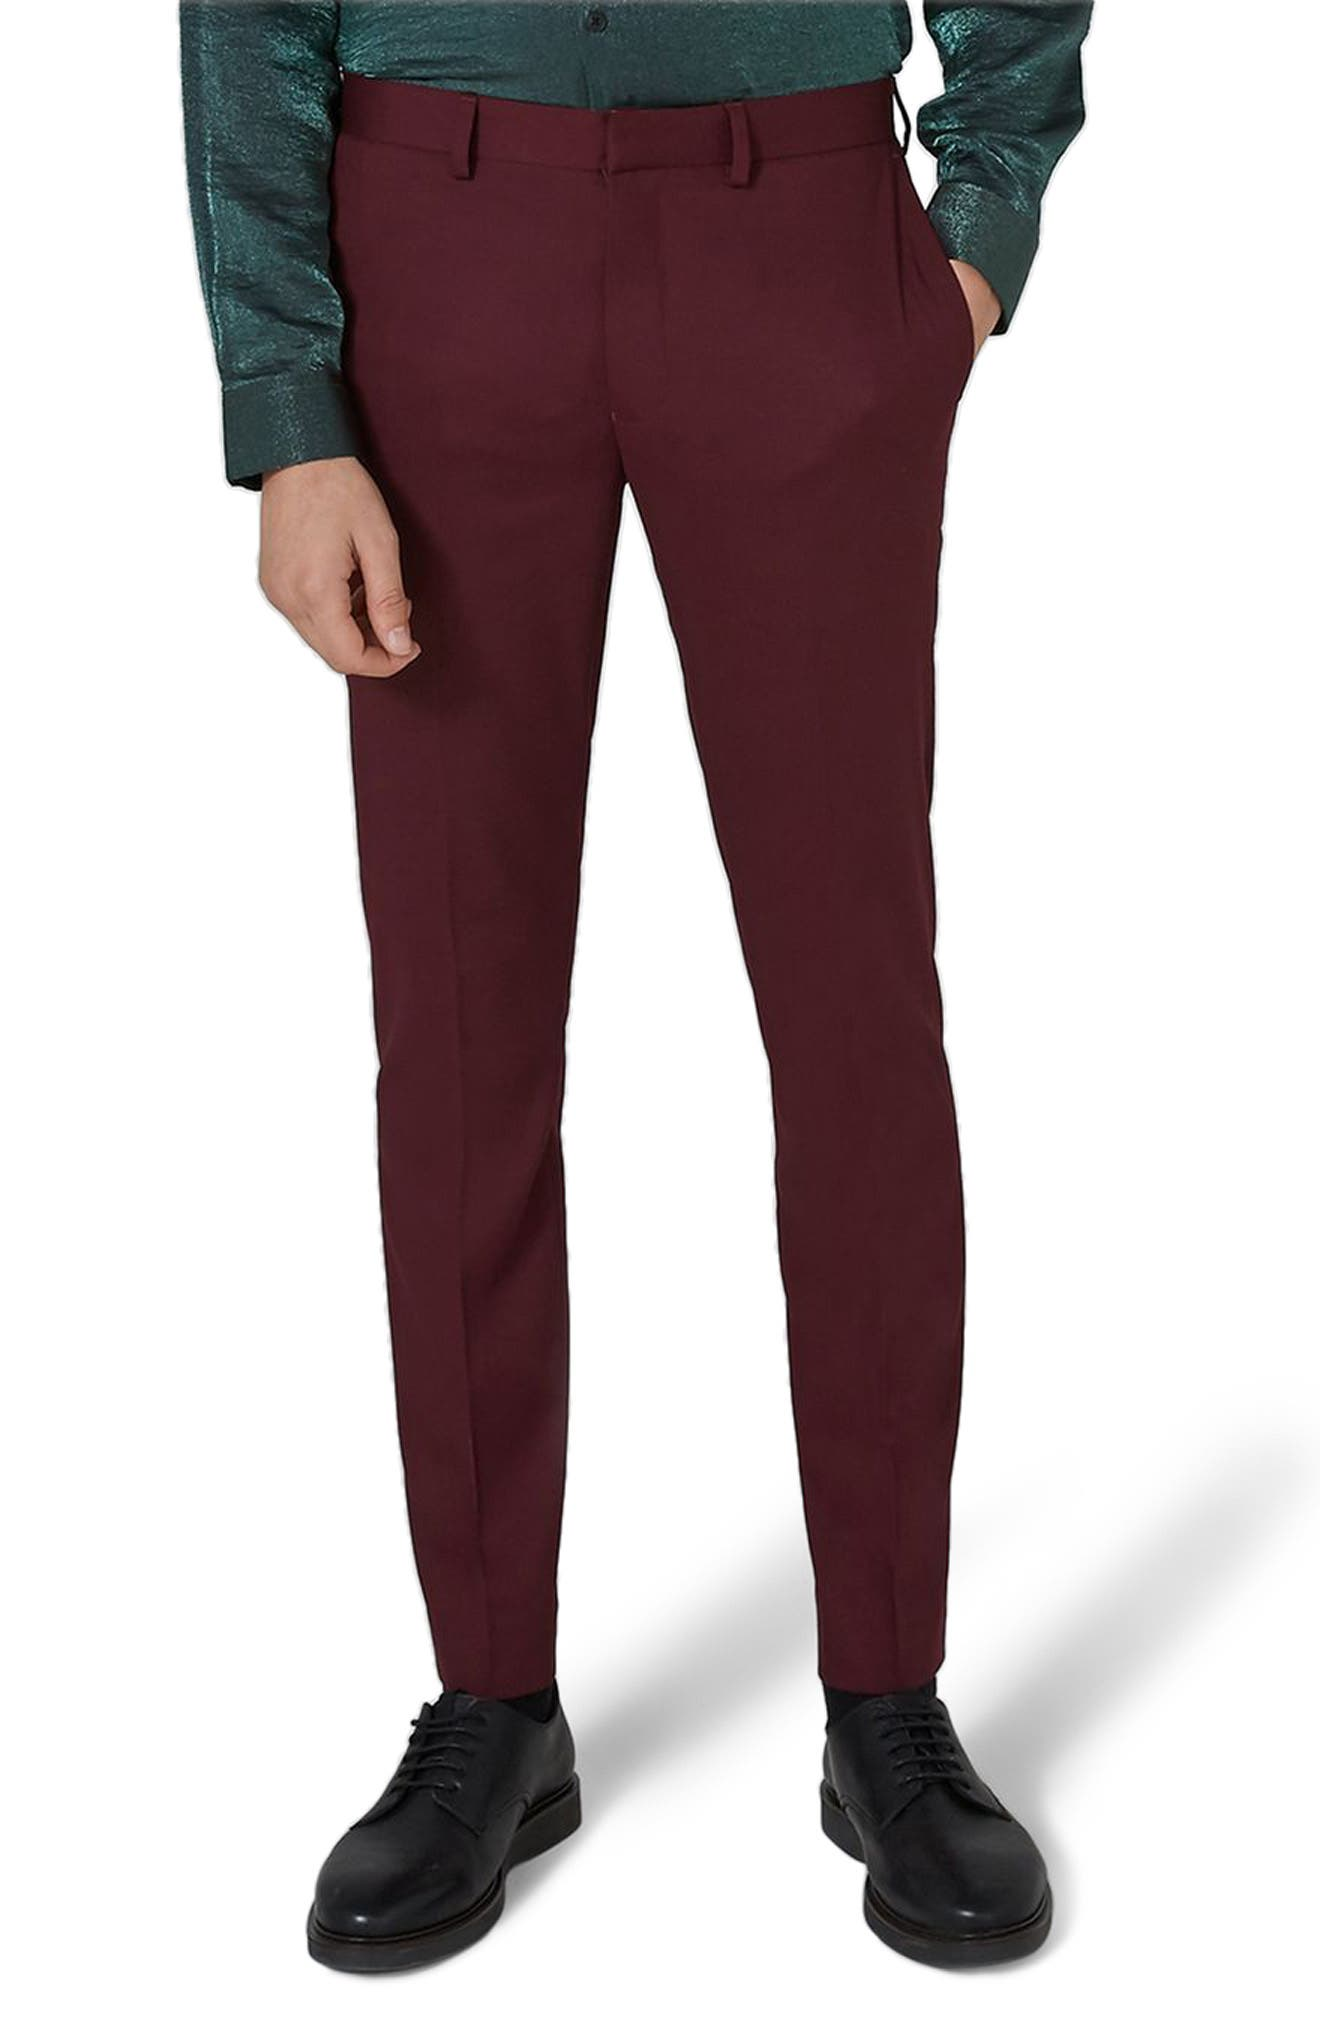 Skinny Fit Burgundy Tuxedo Trousers,                         Main,                         color, 930